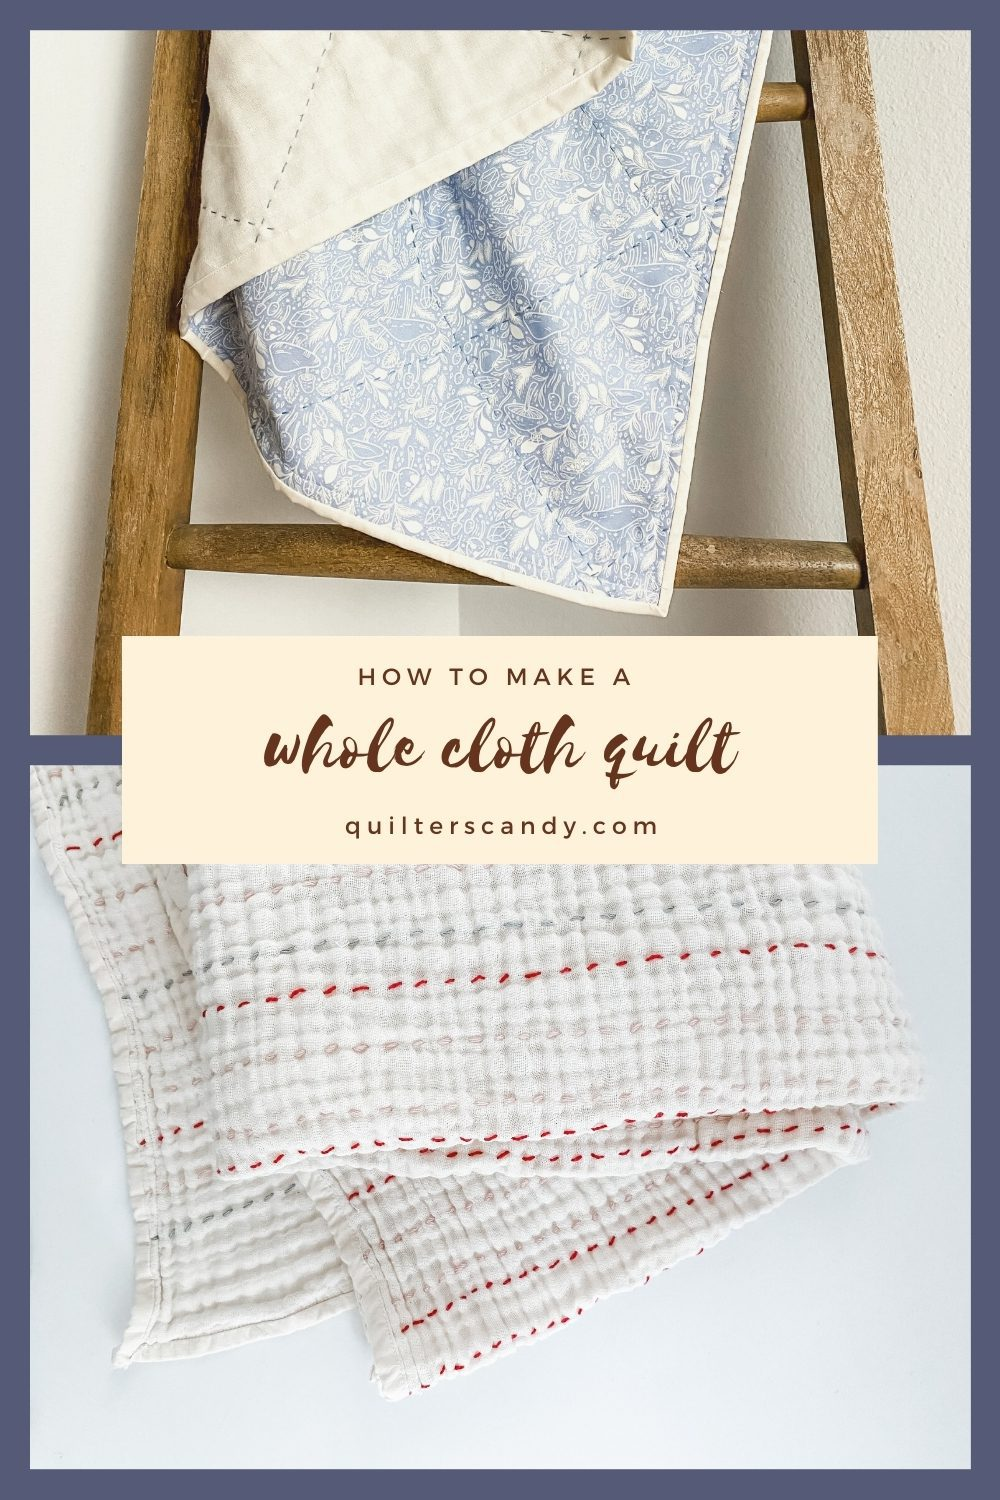 How to make a whole cloth quilt with 4 layer gauze